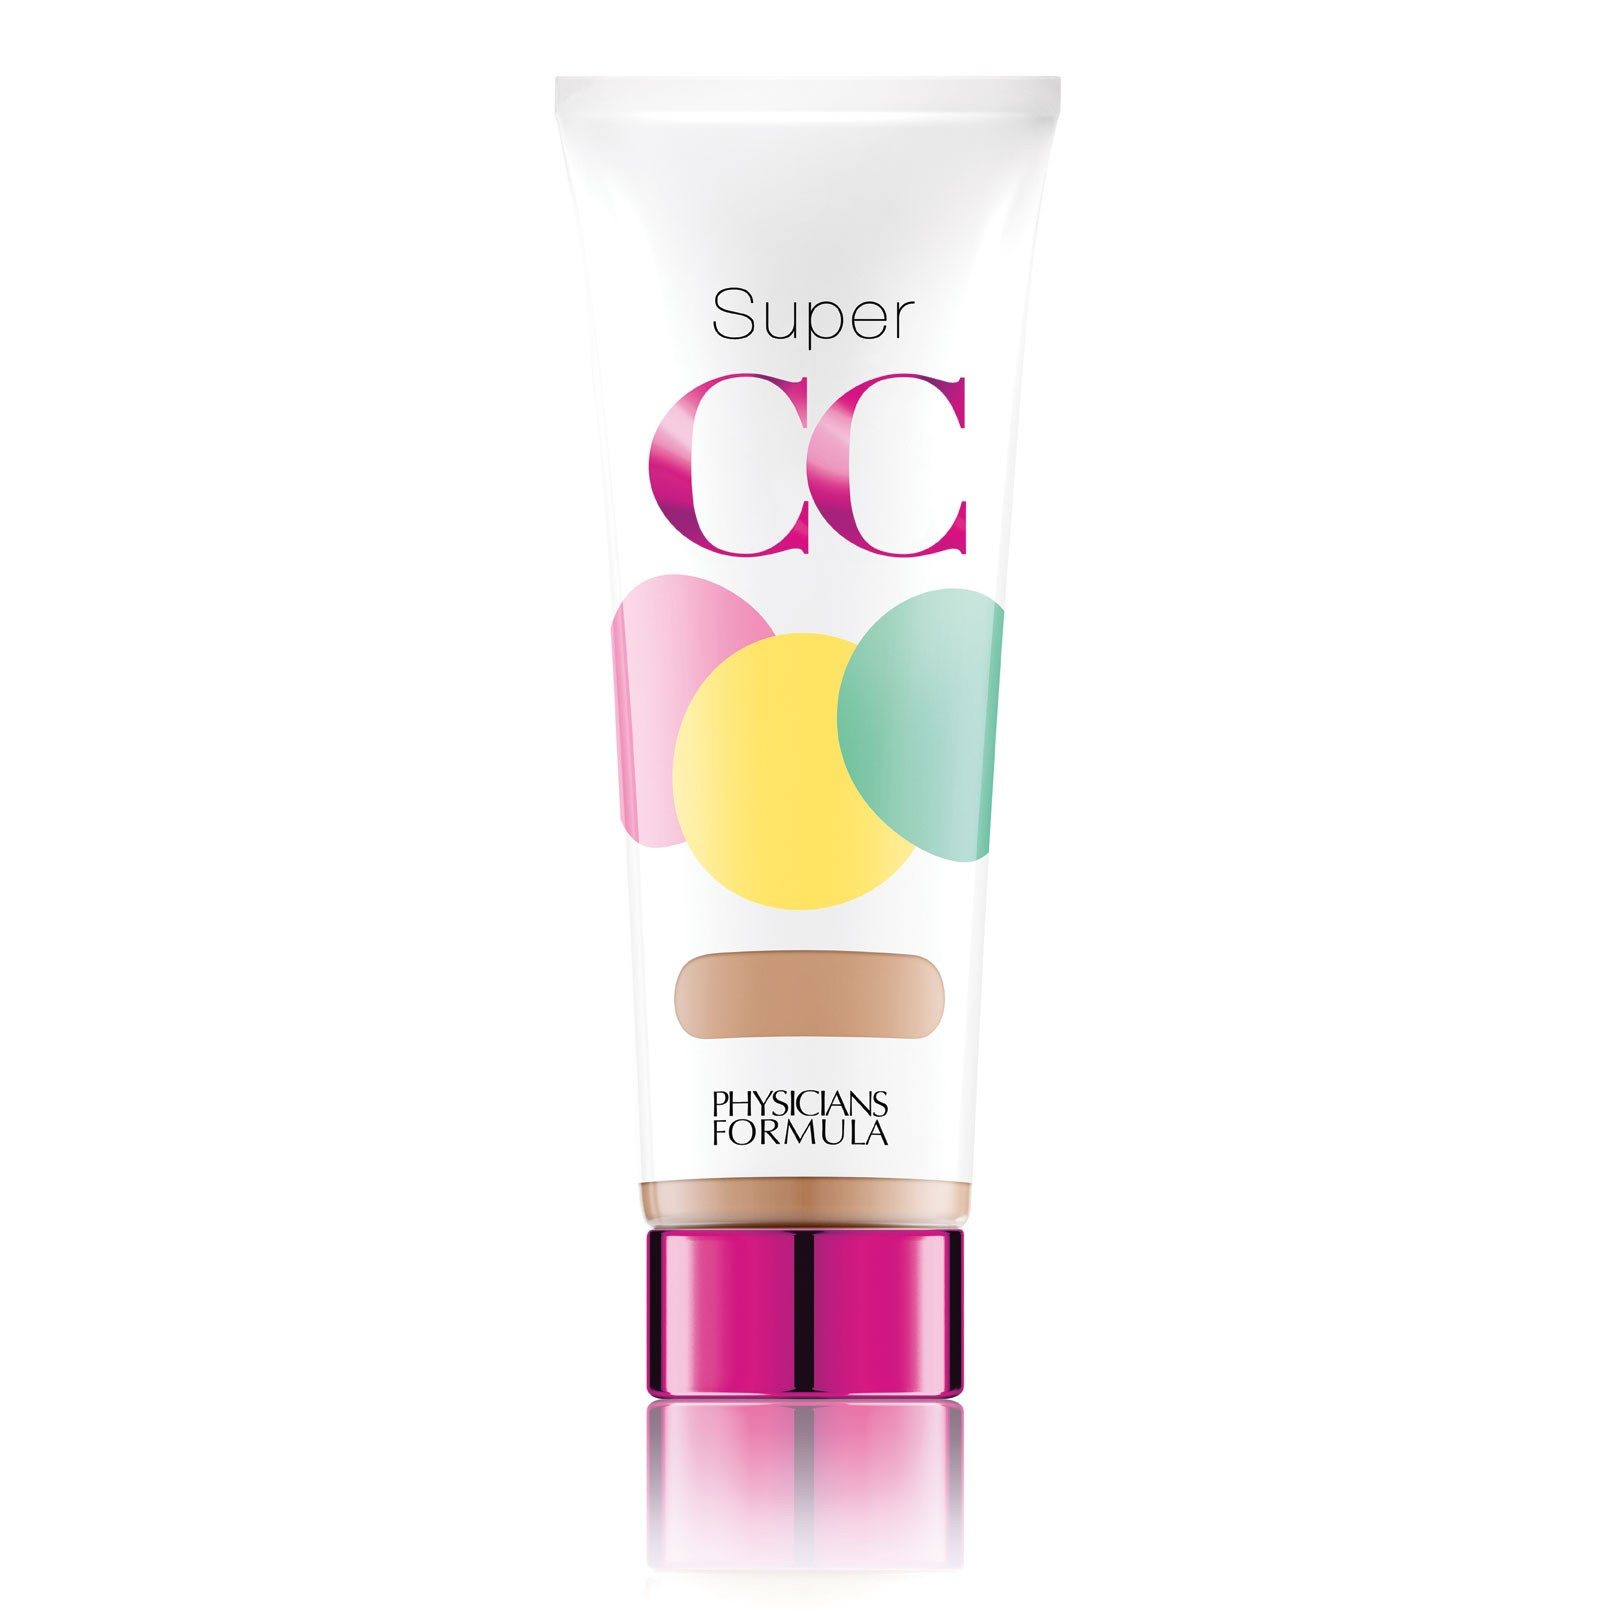 CC Cream - Super CC Color-Correction + Care All-Over Blur CC Cream SPF 30